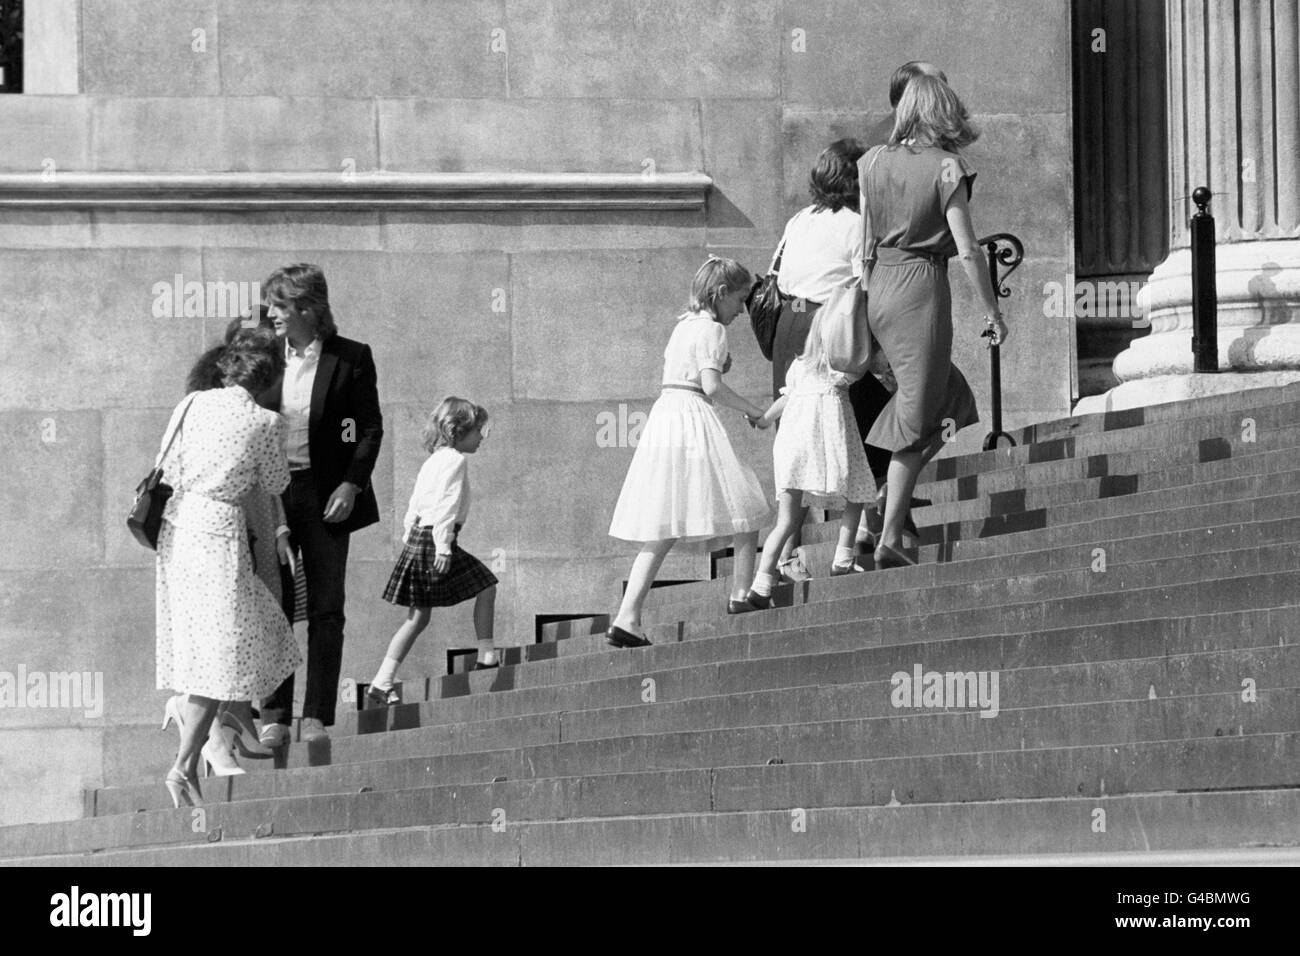 Royalty - Prince of Wales and Lady Diana Spencer Wedding preparations - St. Paul's Cathedral, London. - Stock Image